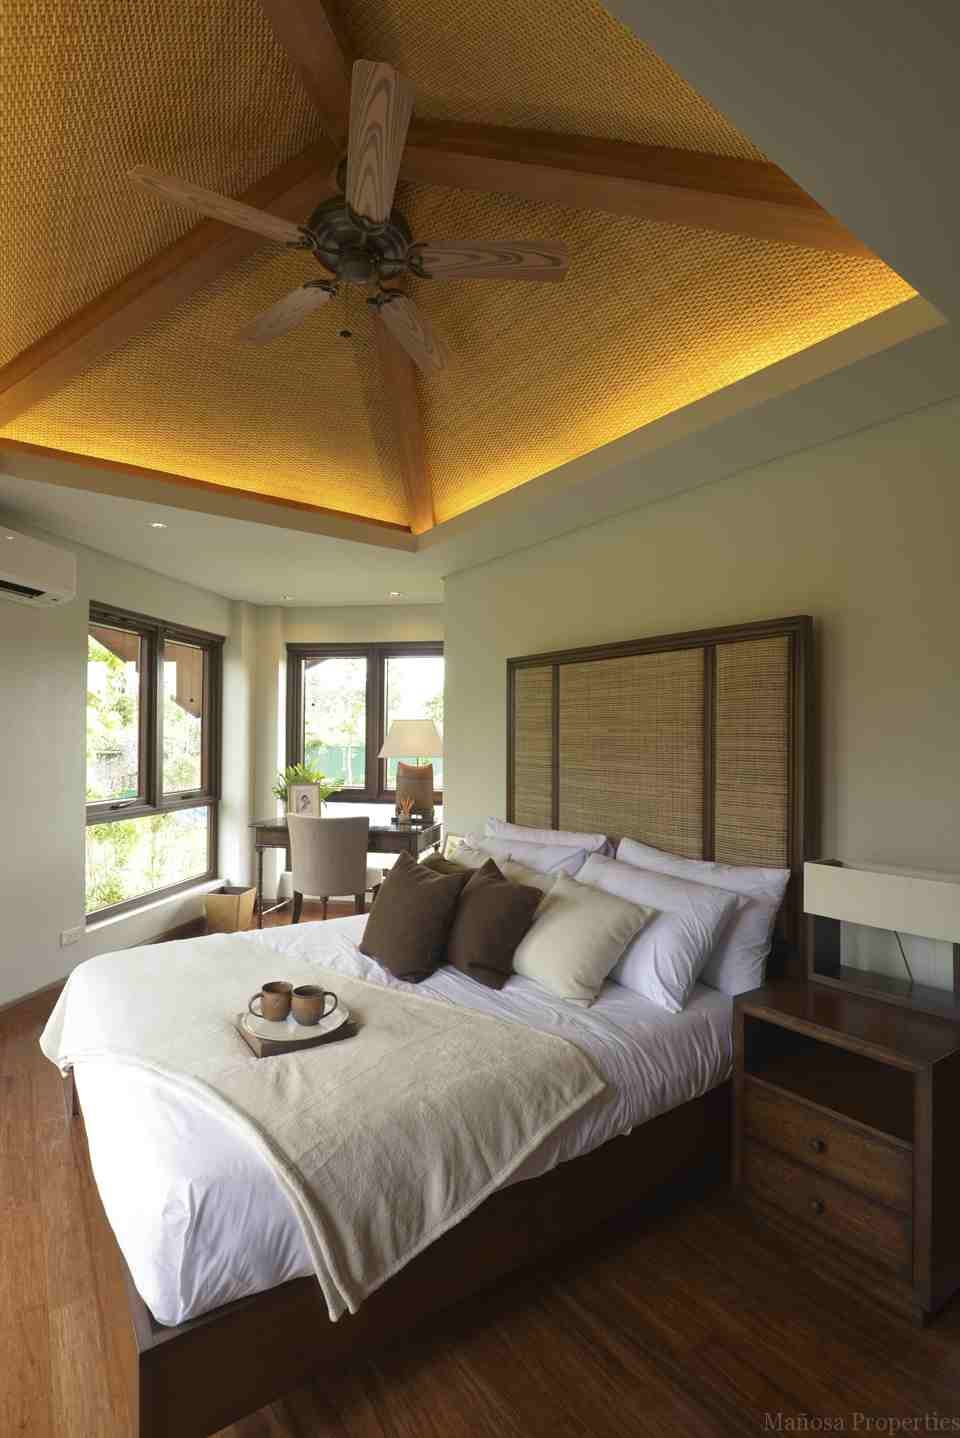 Modern bahay kubo asian resort filipino design